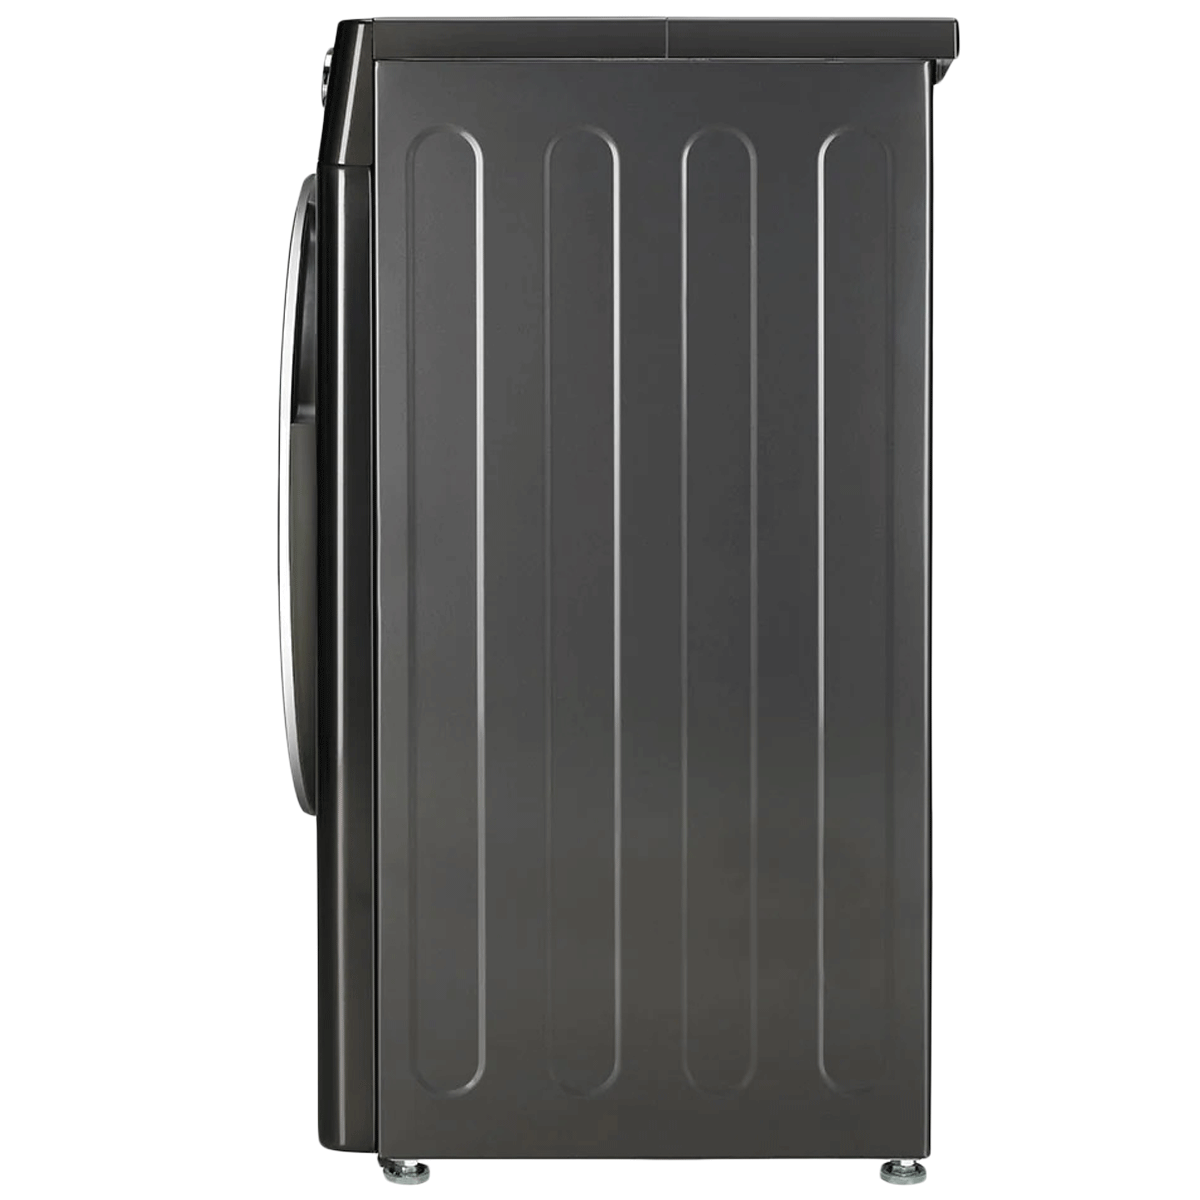 LG 7 kg 5 Star Fully Automatic Front Load Washing Machine (AI Direct Drive Technology, FHV1207ZWB, Black Steel) 10